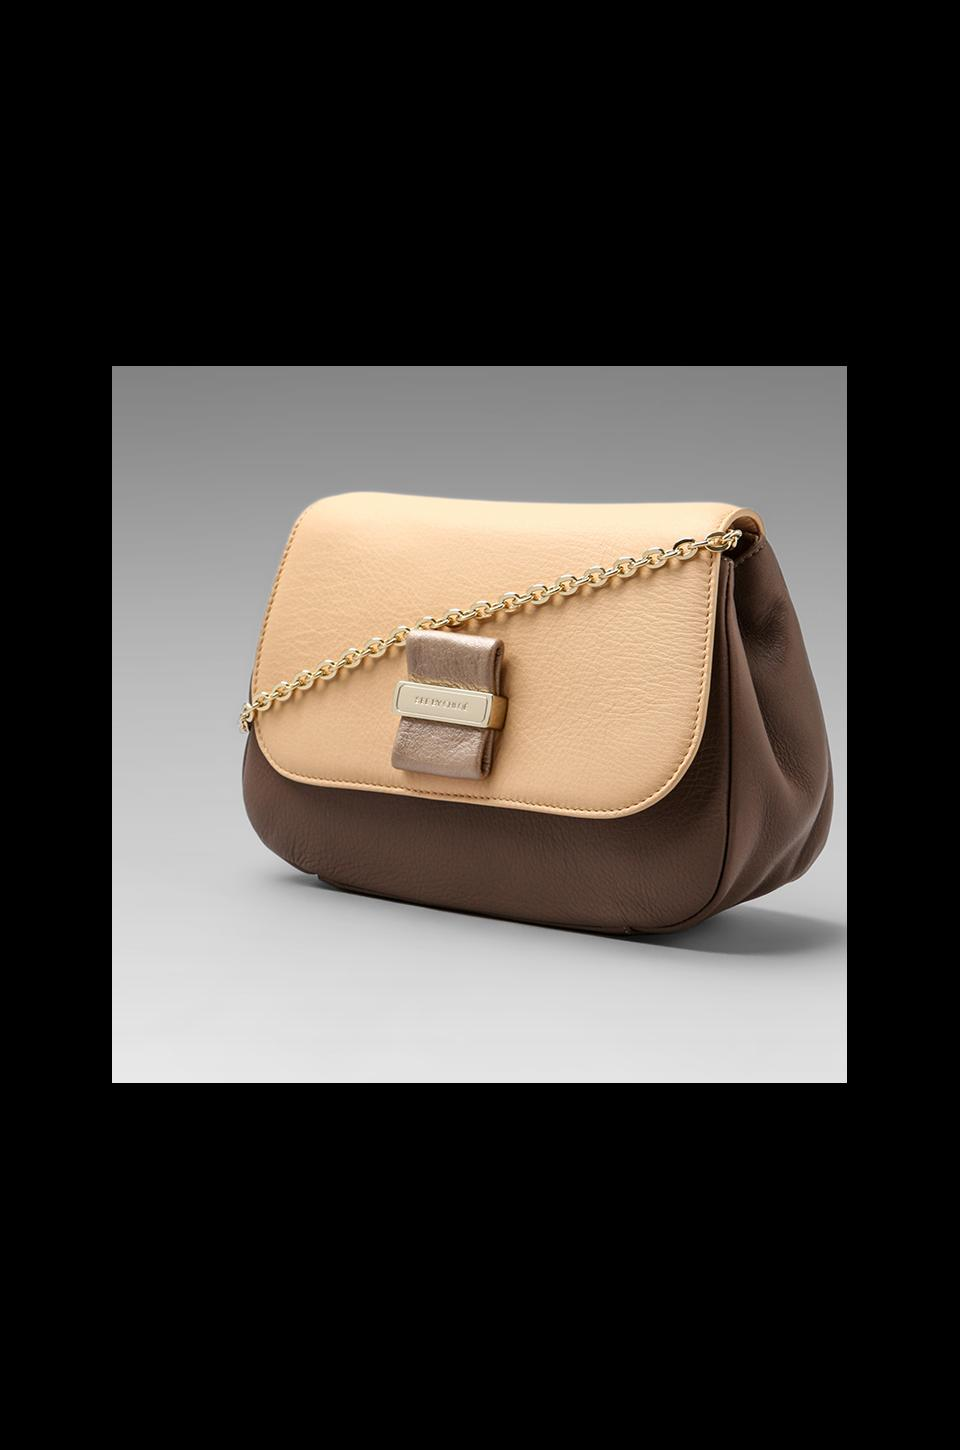 See By Chloe Rosita Chain Purse in Taupe/Cream/Pale Gold